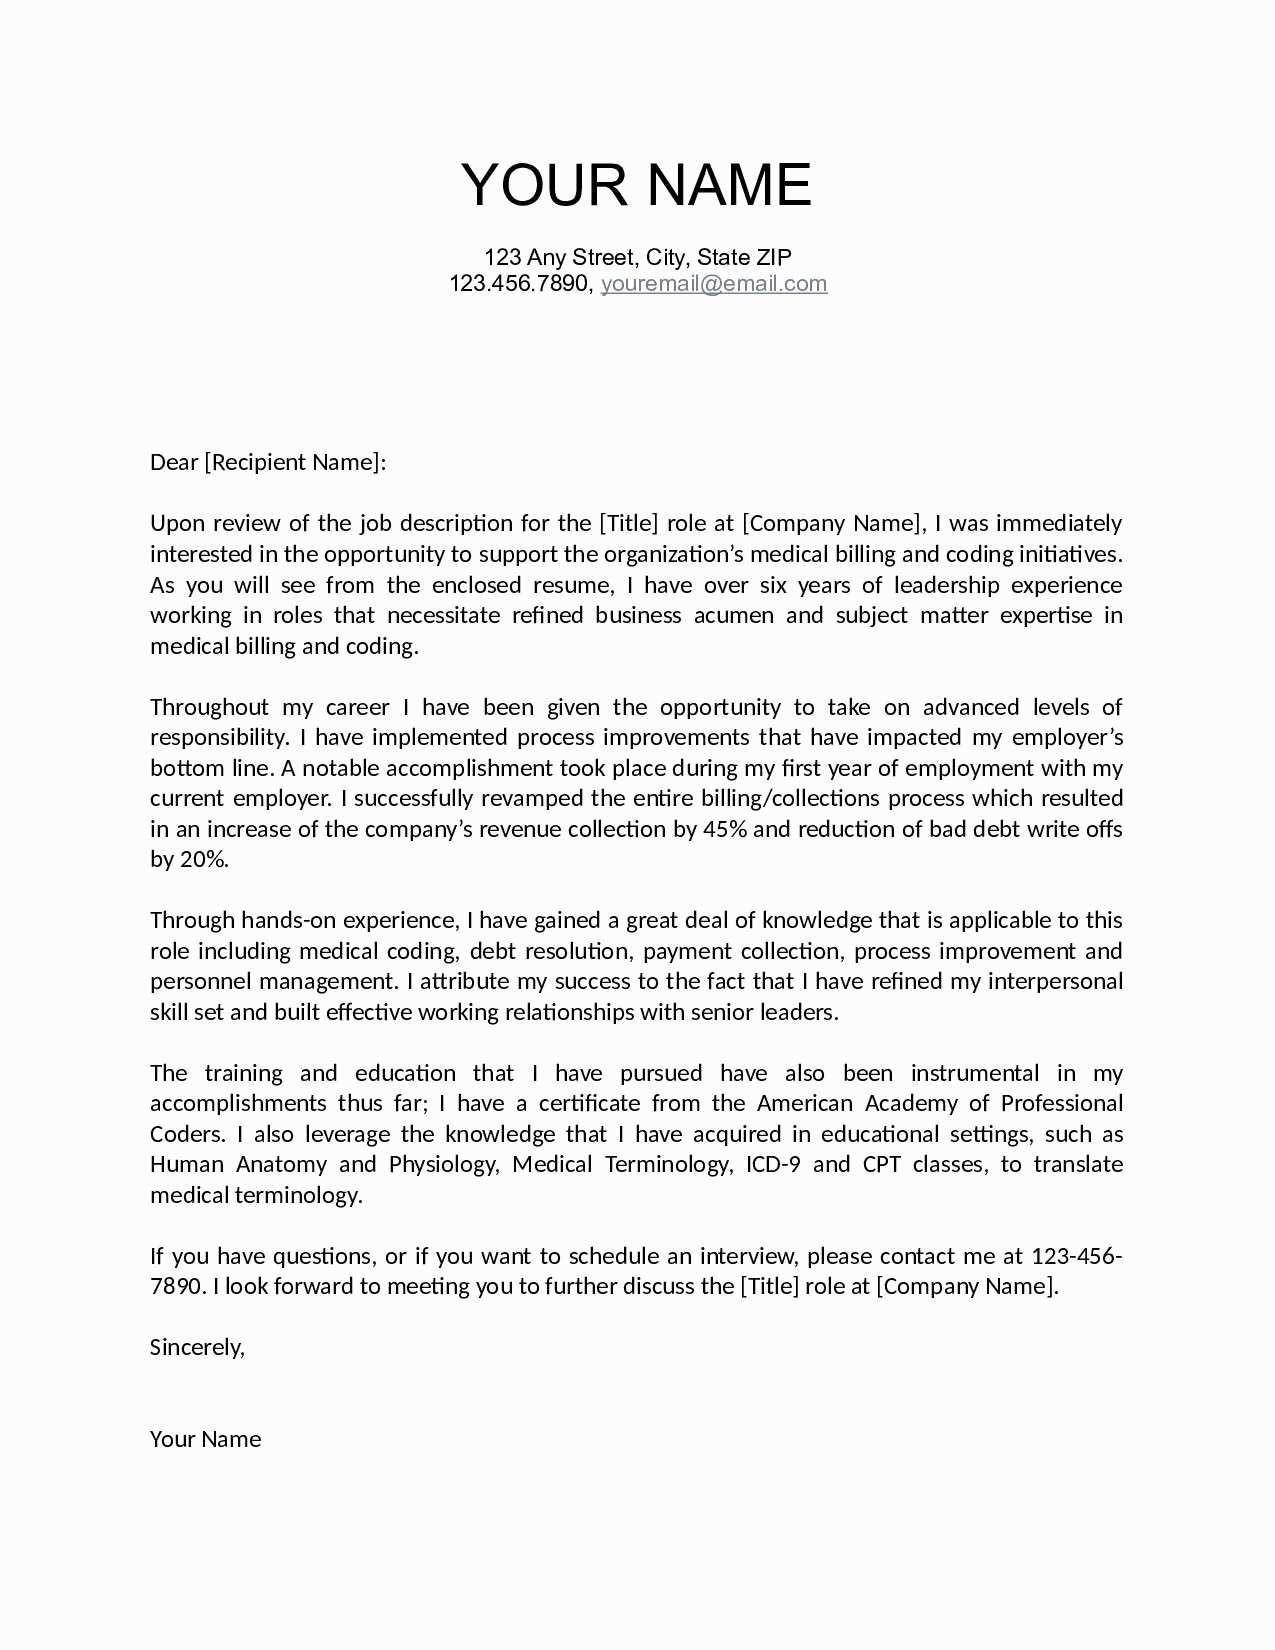 Mortgage Commitment Letter Template - Mortgage Mitment Letter Sample Lovely Job Fer Letter Template Us